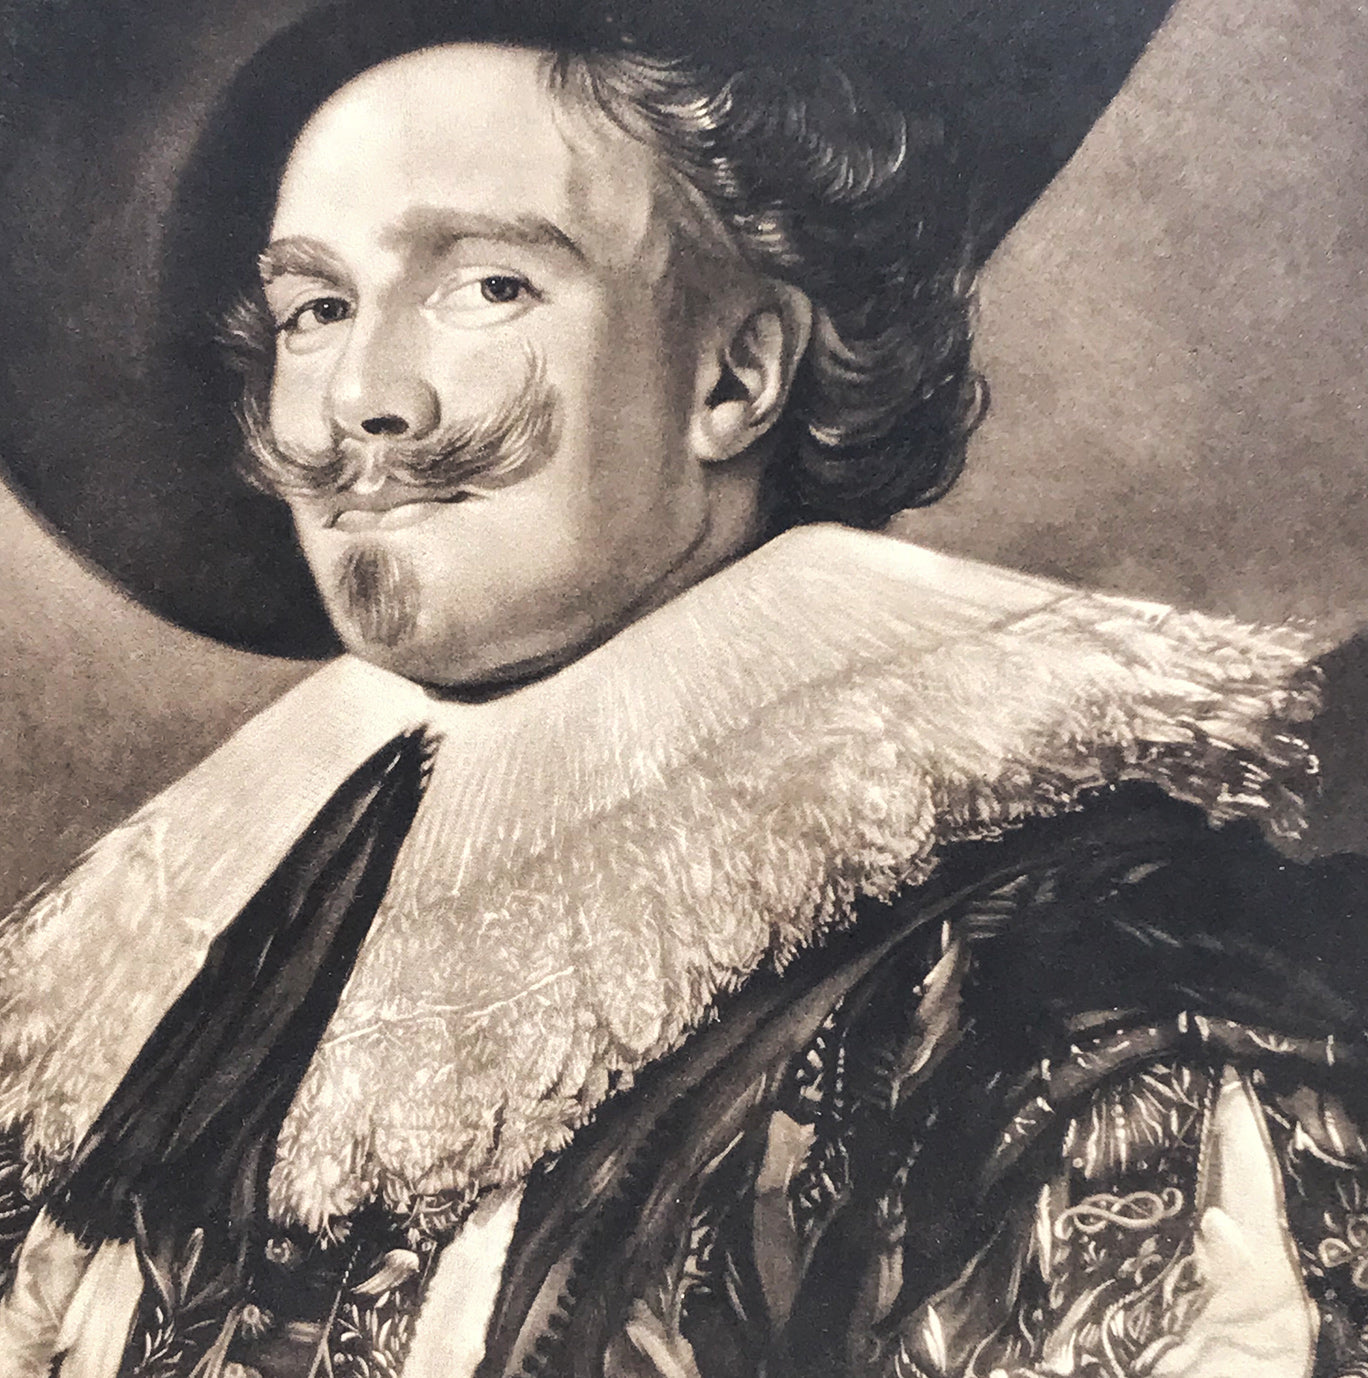 Antique Etching of The Laughing Cavalier - IntoVintage.co.uk